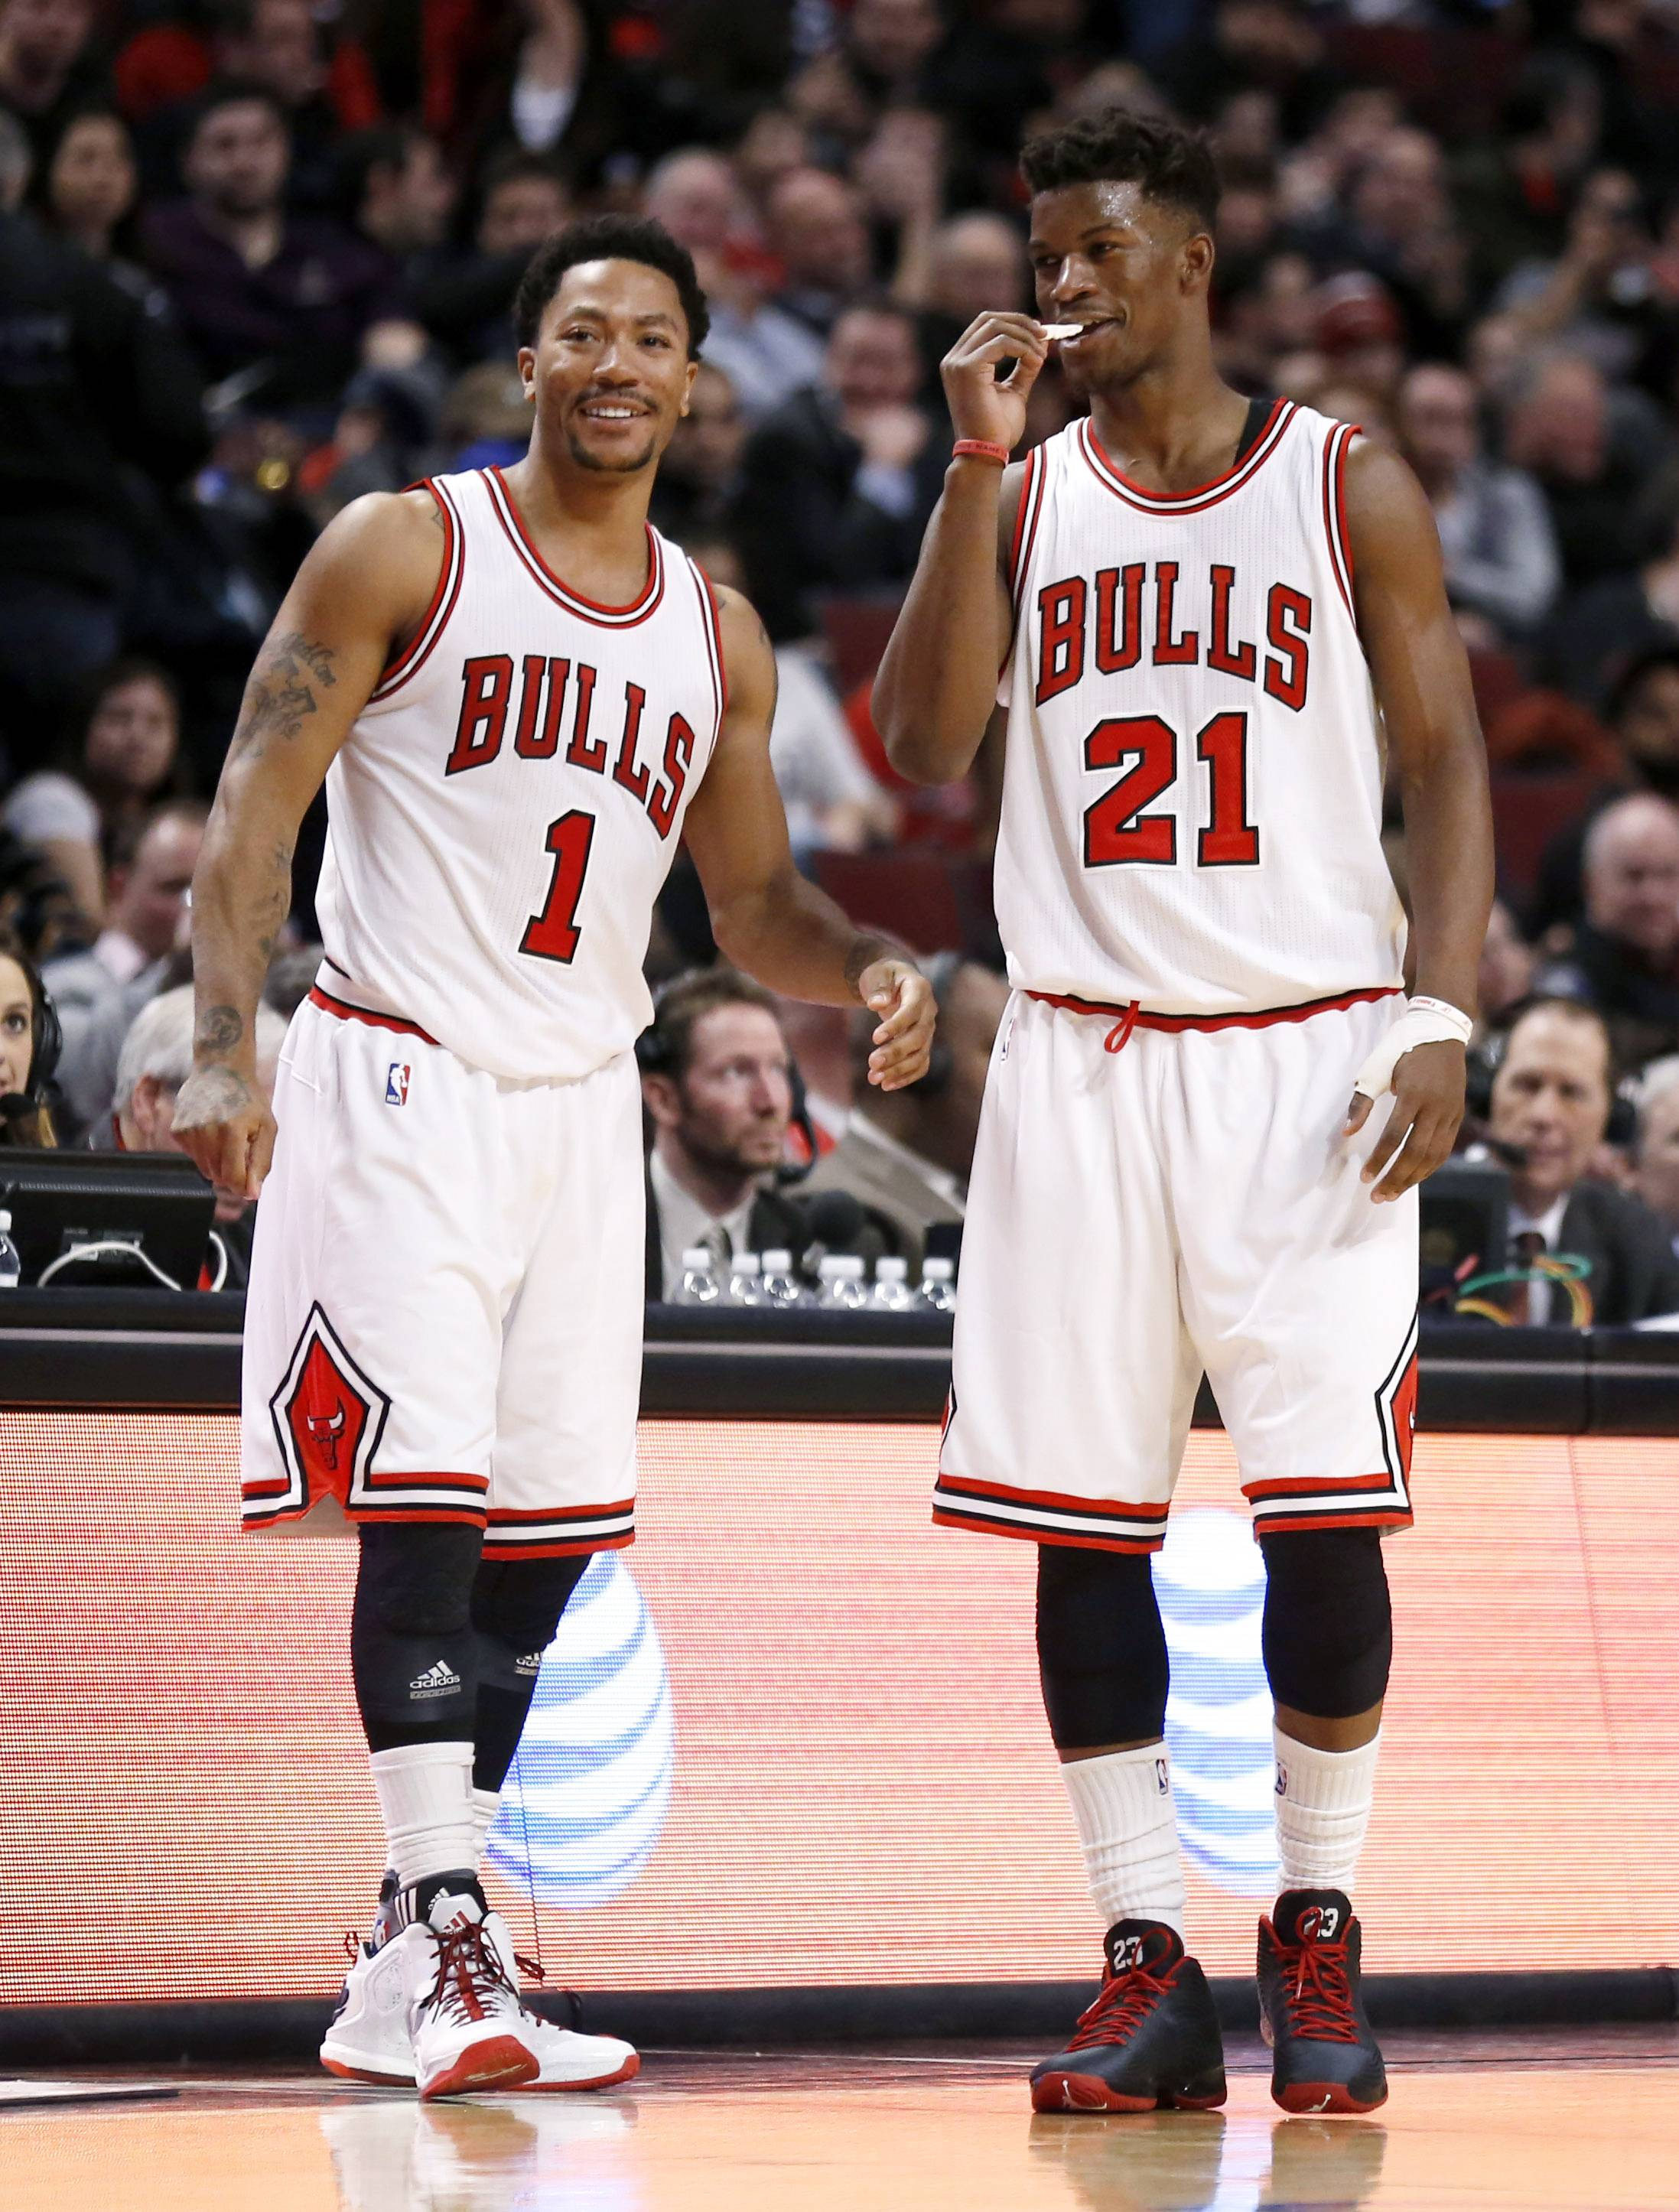 If the Bulls want to improve their roster, they need to act fast. The NBA trade deadline is next Thursday, but it won't be easy for the Bulls to find a deal that works. Jimmy Butler and Derrick Rose are the Bulls most tradable assets, but they aren't likely to be offered up.